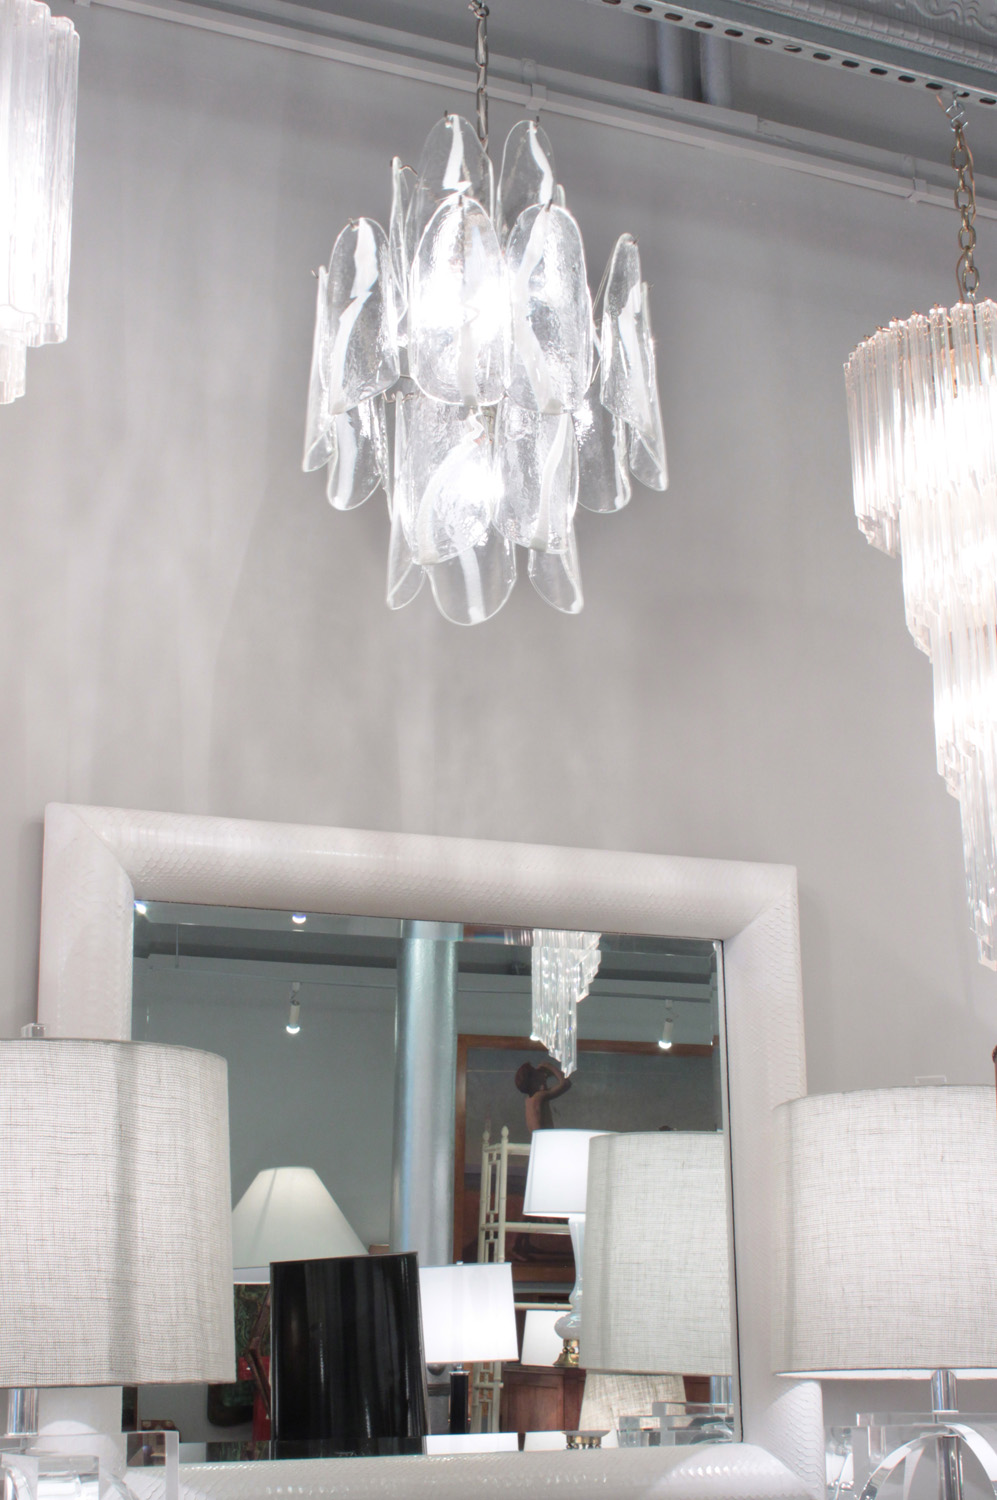 Mazzega 65 clear+white fasce chandelier196 detail4 hires.jpg